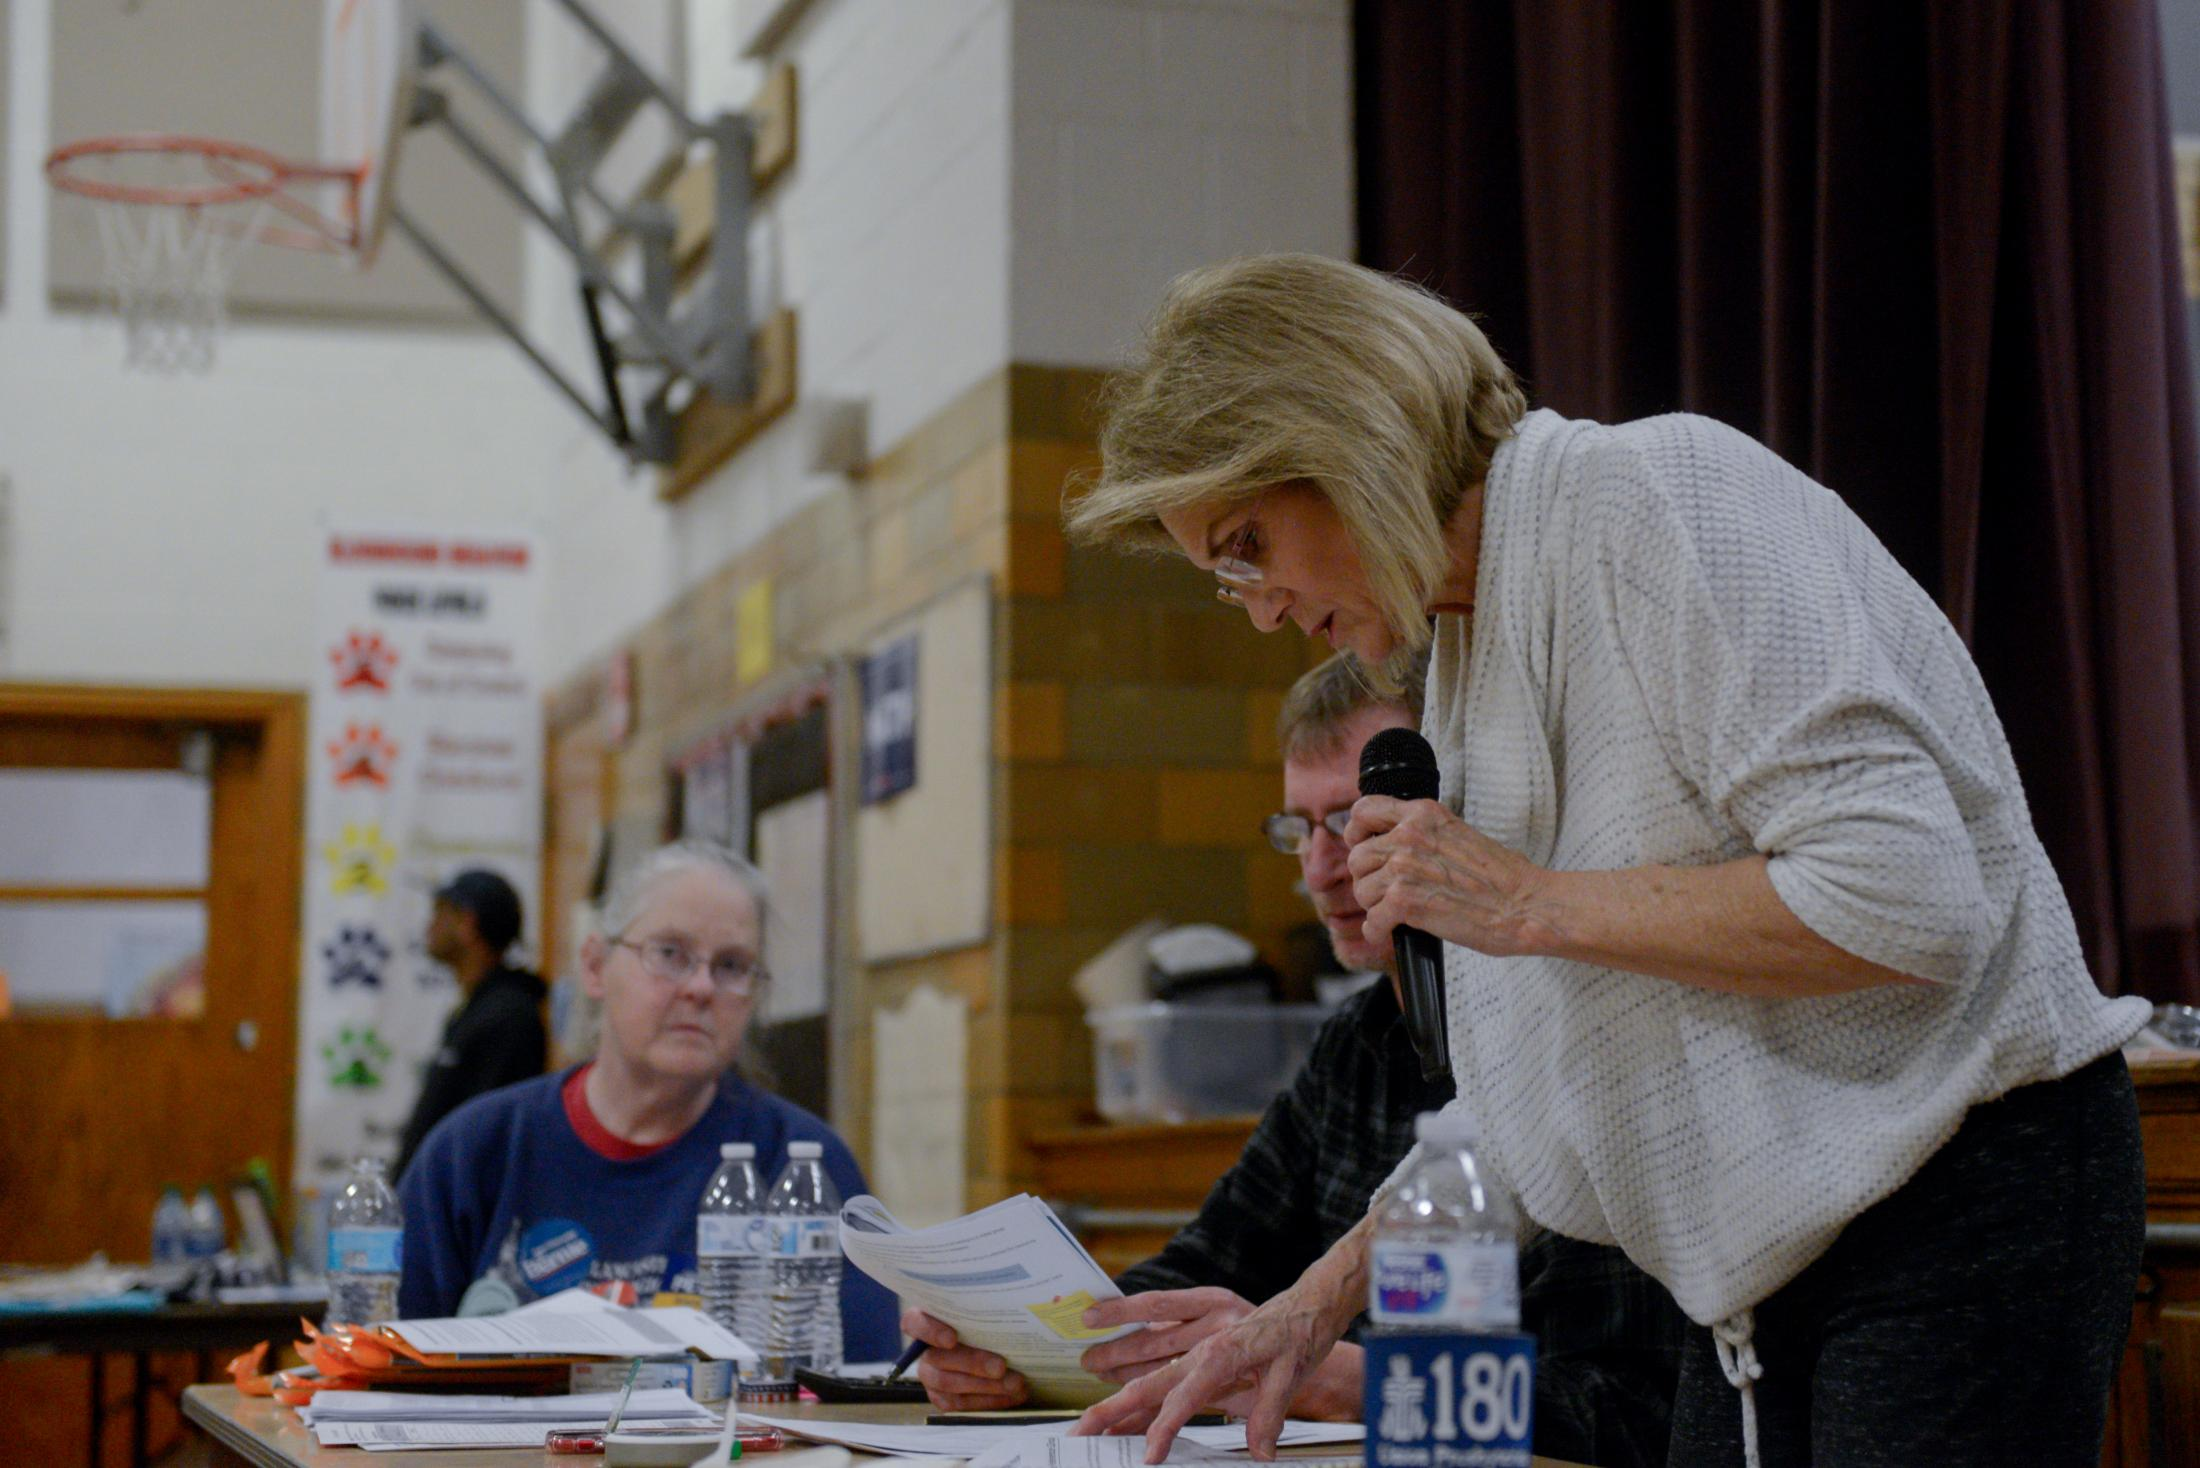 Precinct Chair Anne Pederson reads off which democratic presidential candidates still have viability at Richardson Elementary School for the Fifth Precinct caucus on Monday, February 3, 2020, in Fort Madison, Iowa. If a candidate does not have at least 15 percent of the votes in a caucus they lose viability and their voters can move to another choice.